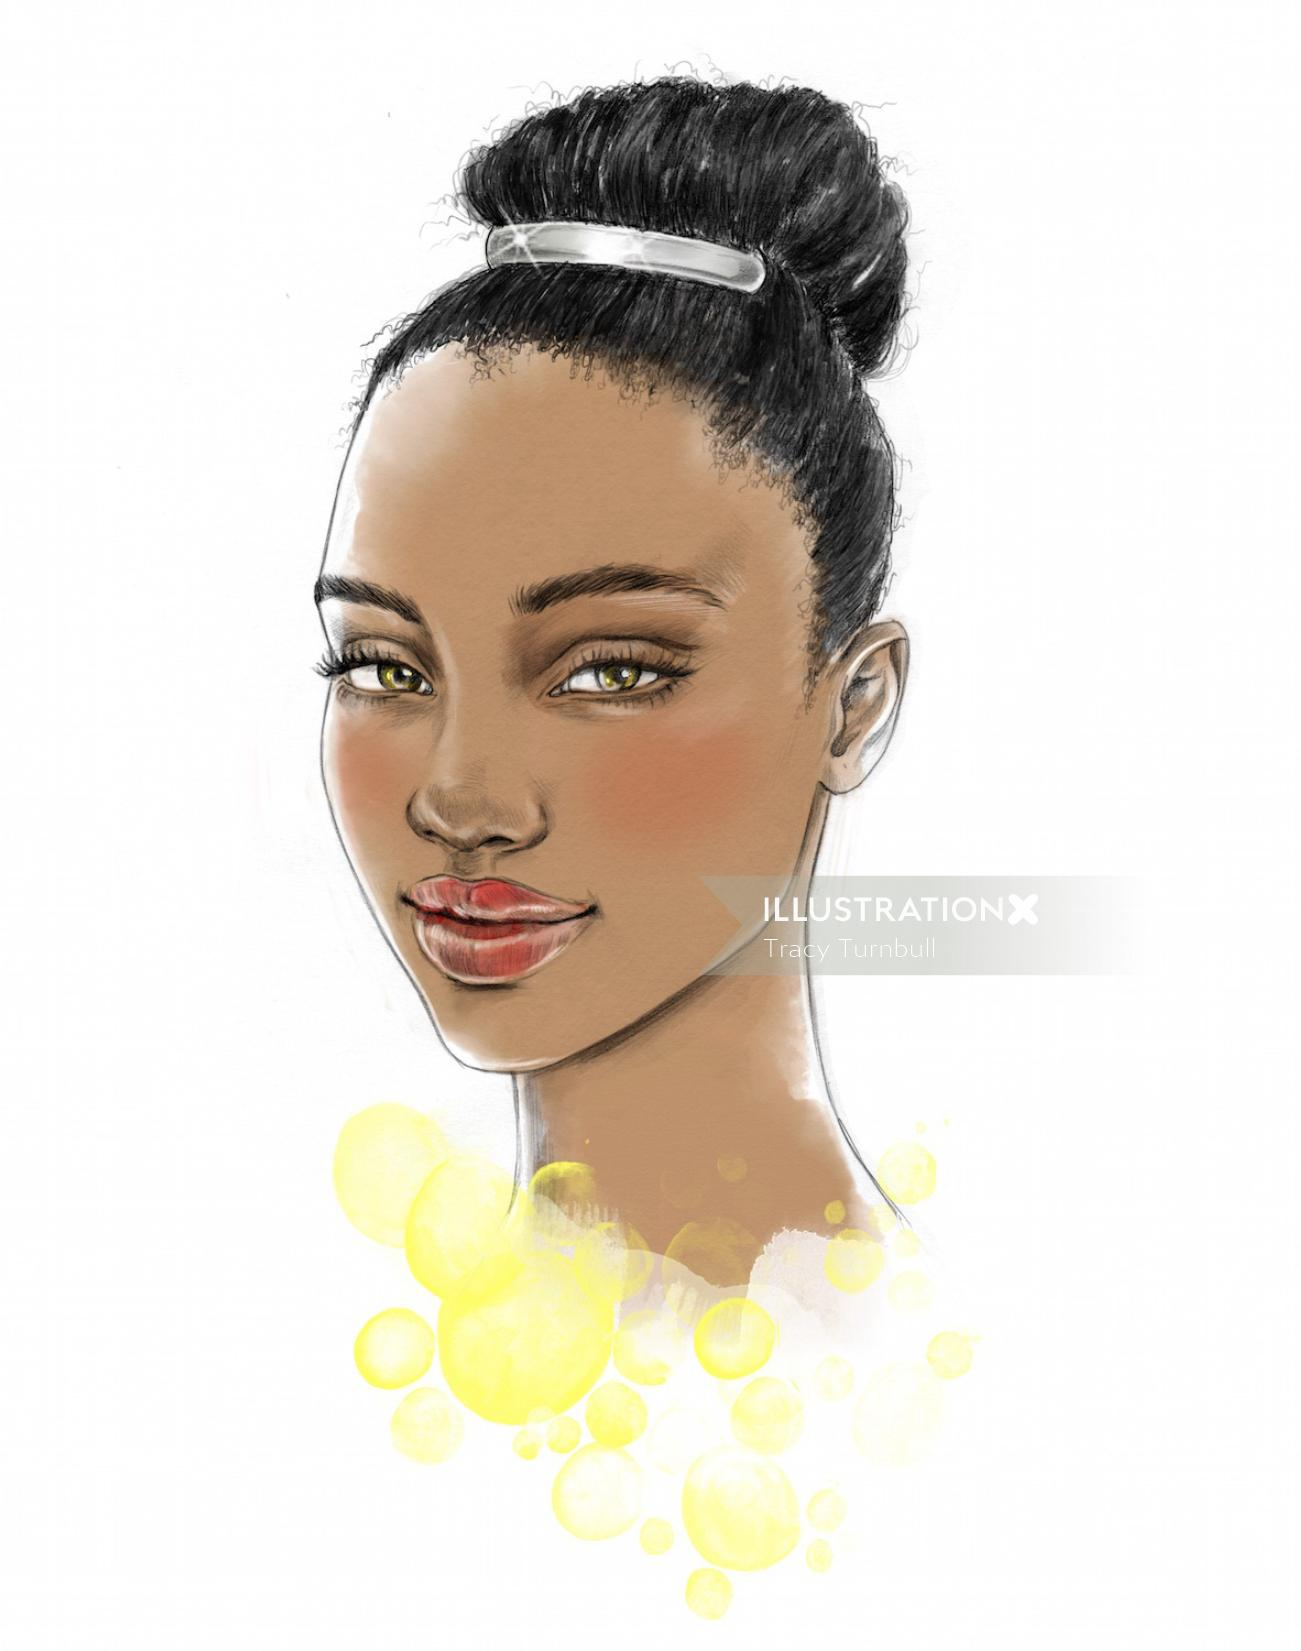 Beauty illustration of dark women with hair tied up